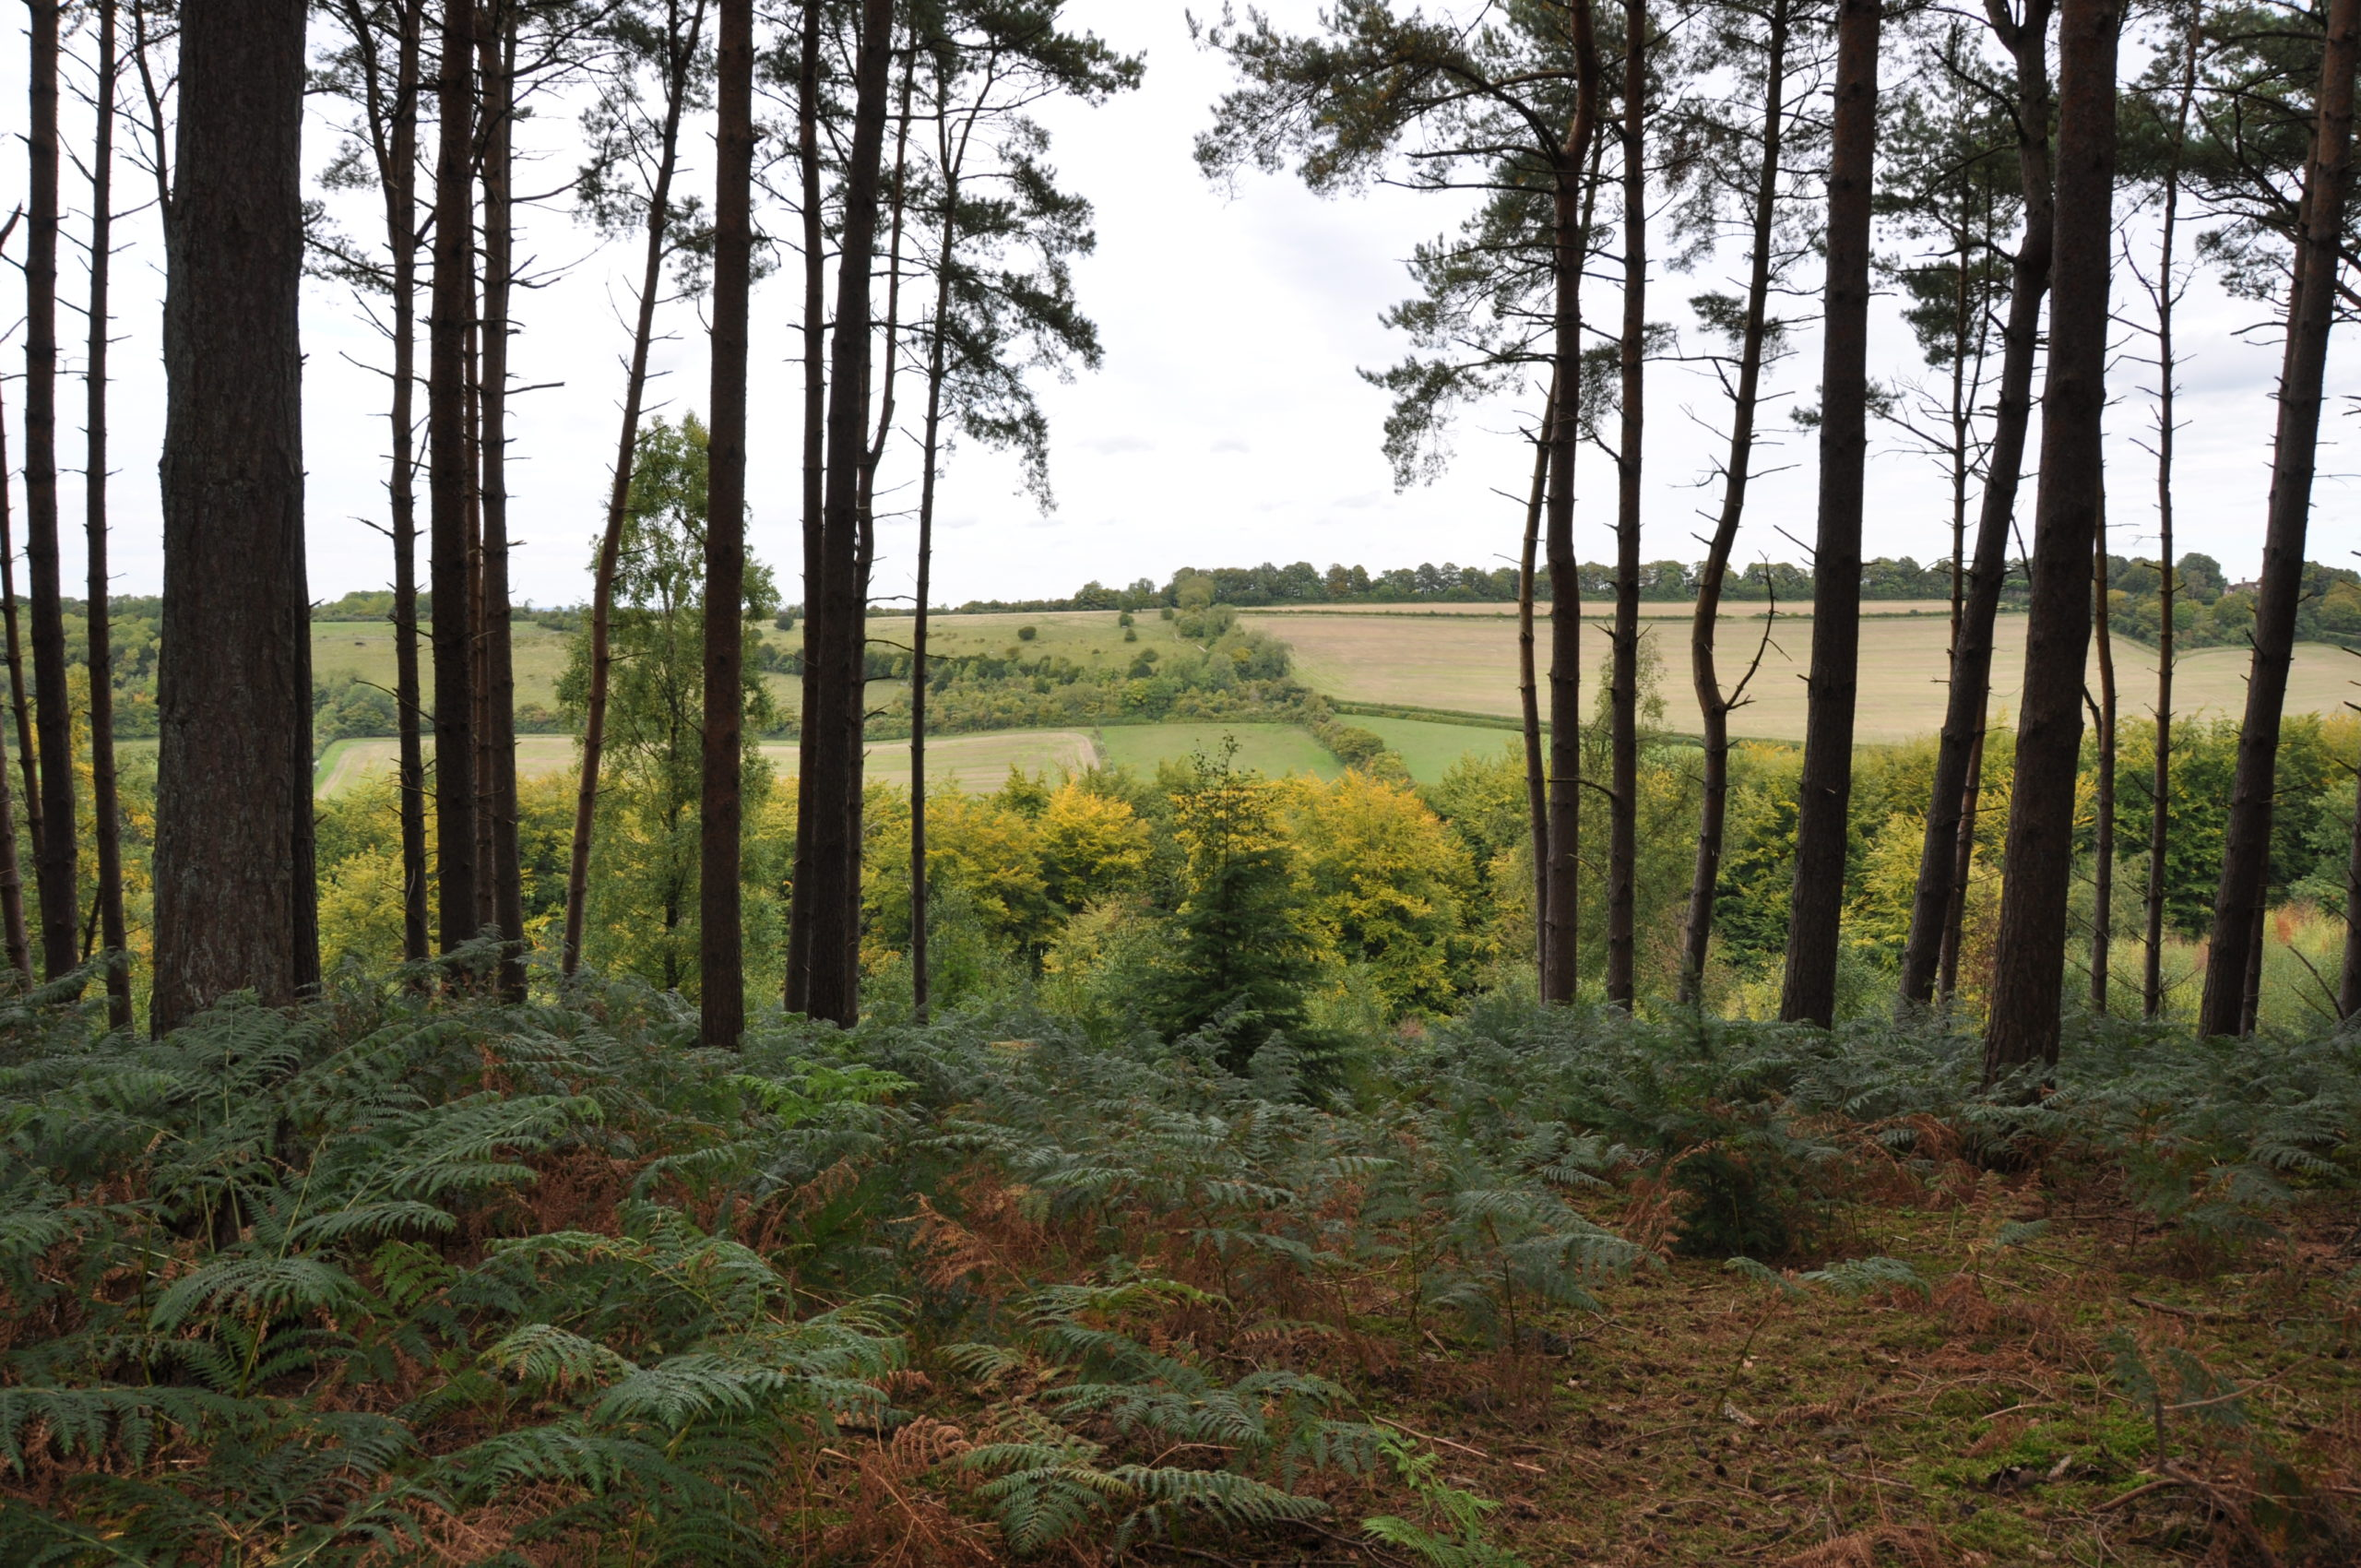 Photograph of the view from Chantry Wood to Pewley Down